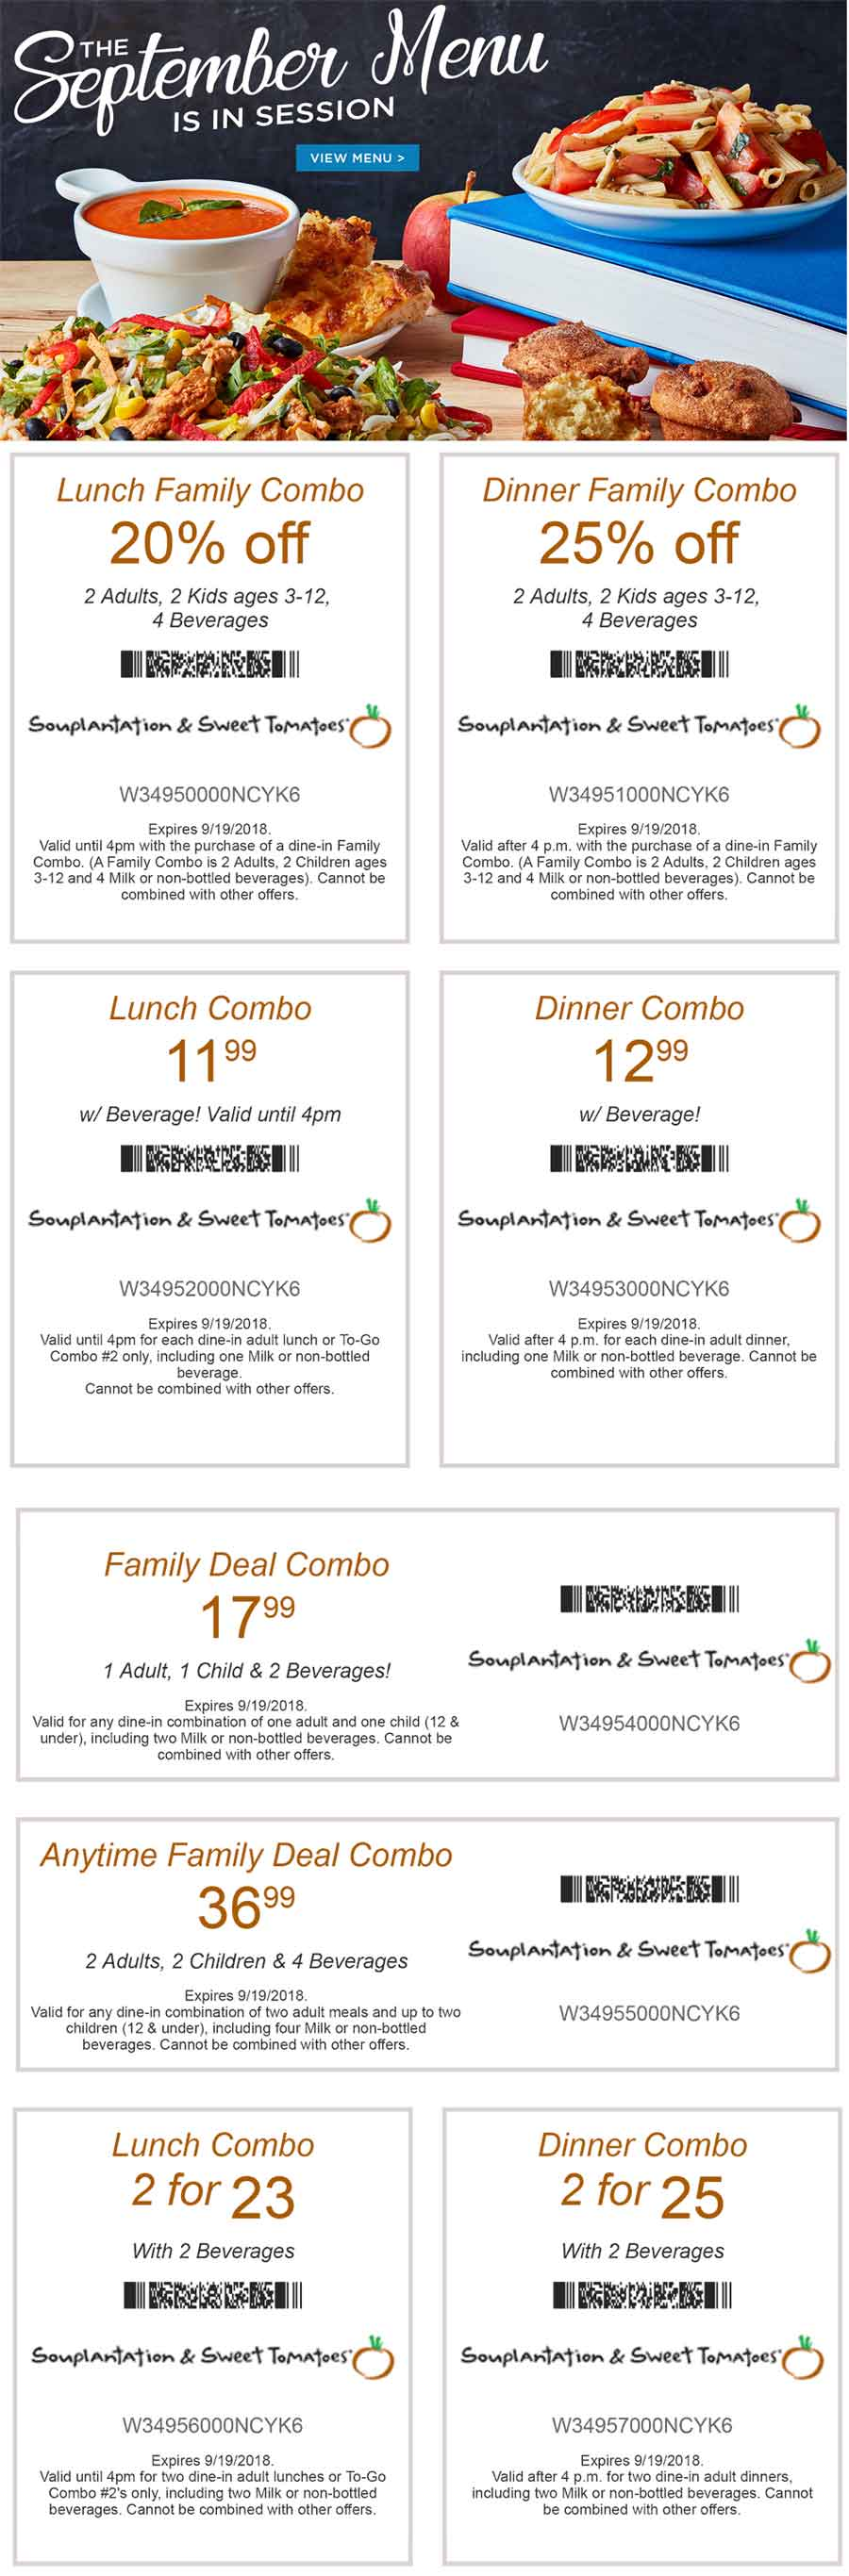 Sweet Tomatoes Coupon May 2019 20% off & more at Souplantation & Sweet Tomatoes restaurants